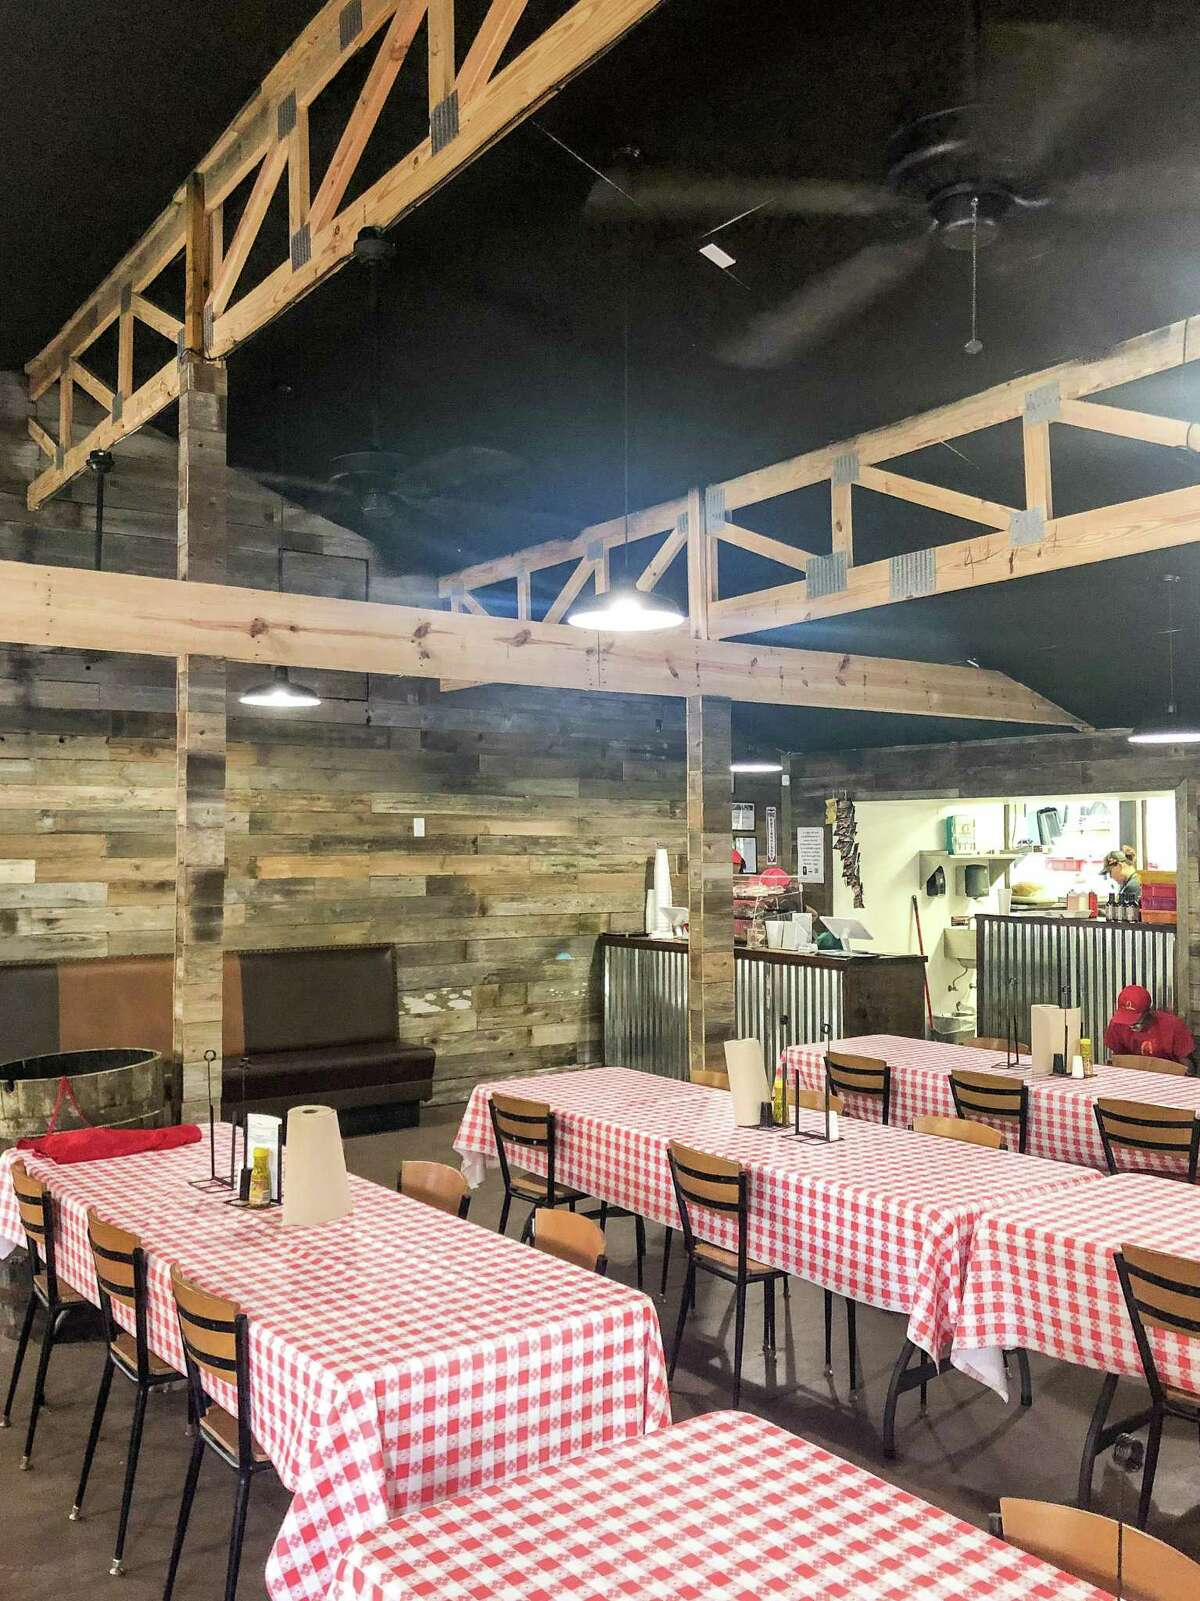 Dining room at Southern Q BBQ